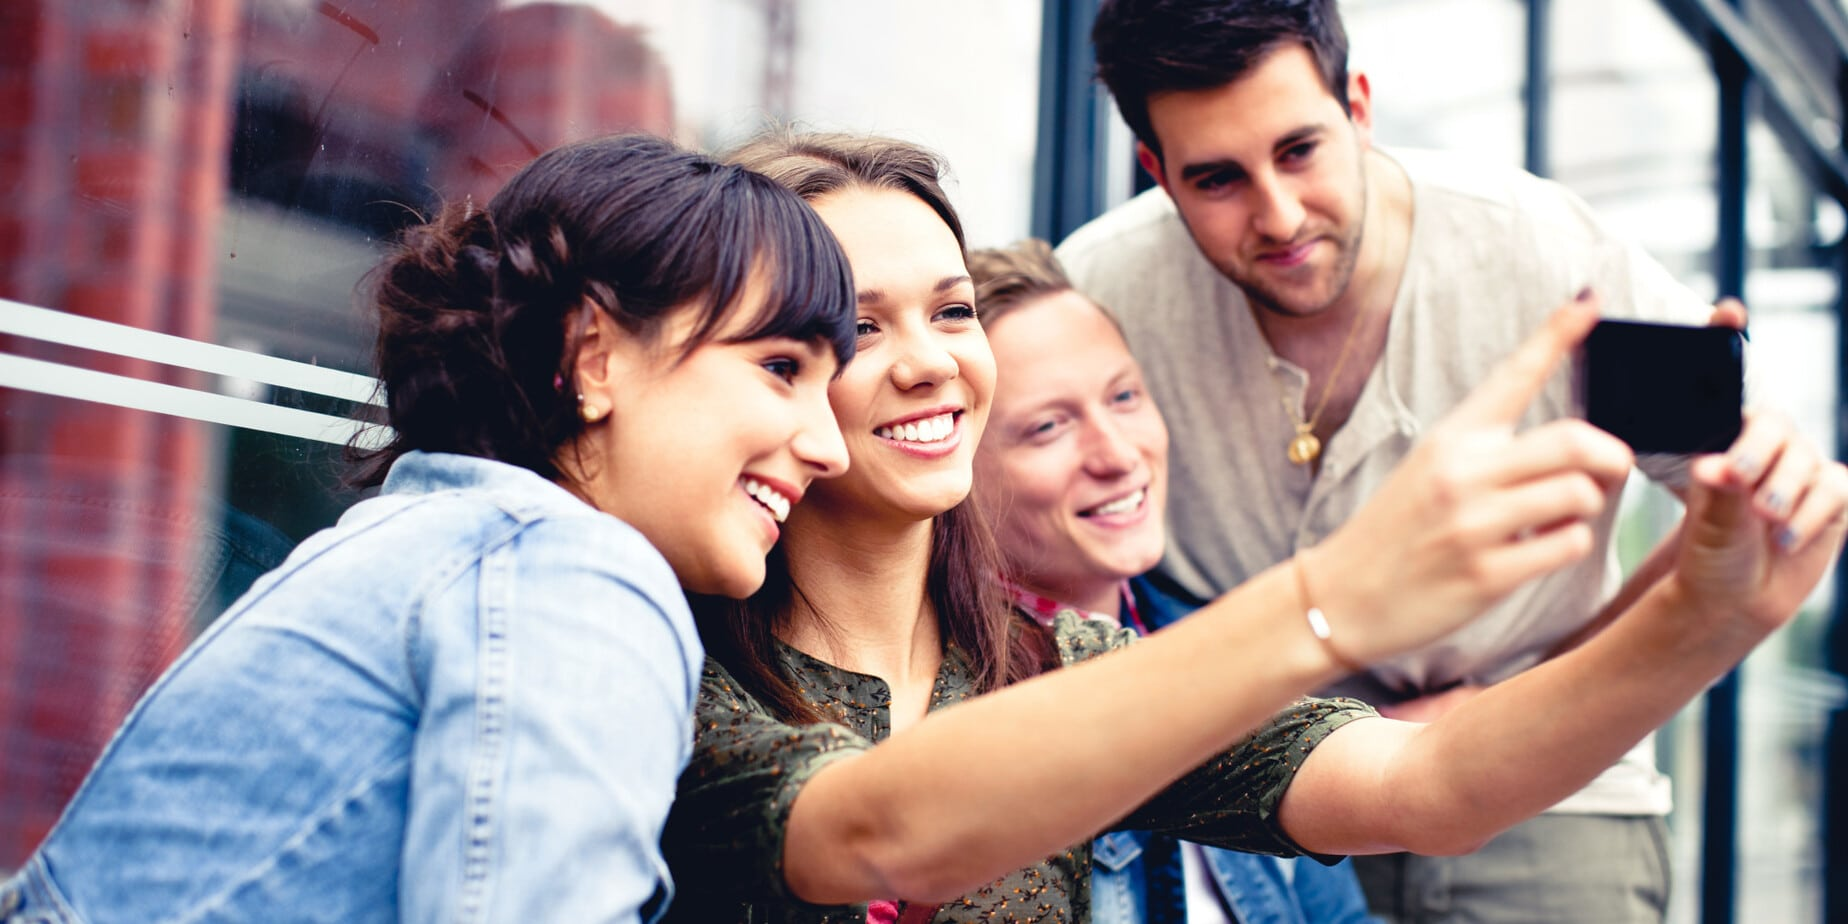 Will Millennials fully embrace mobile payments in 2016?